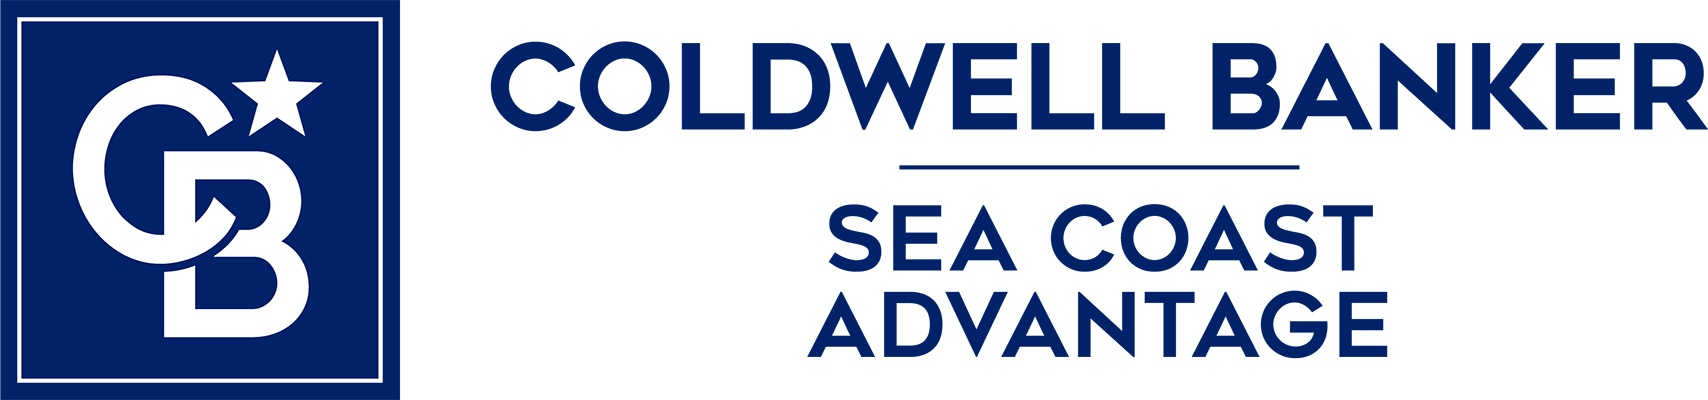 Rokoski, Blake & Associates - Coldwell Banker Sea Coast Advantage Realty Logo